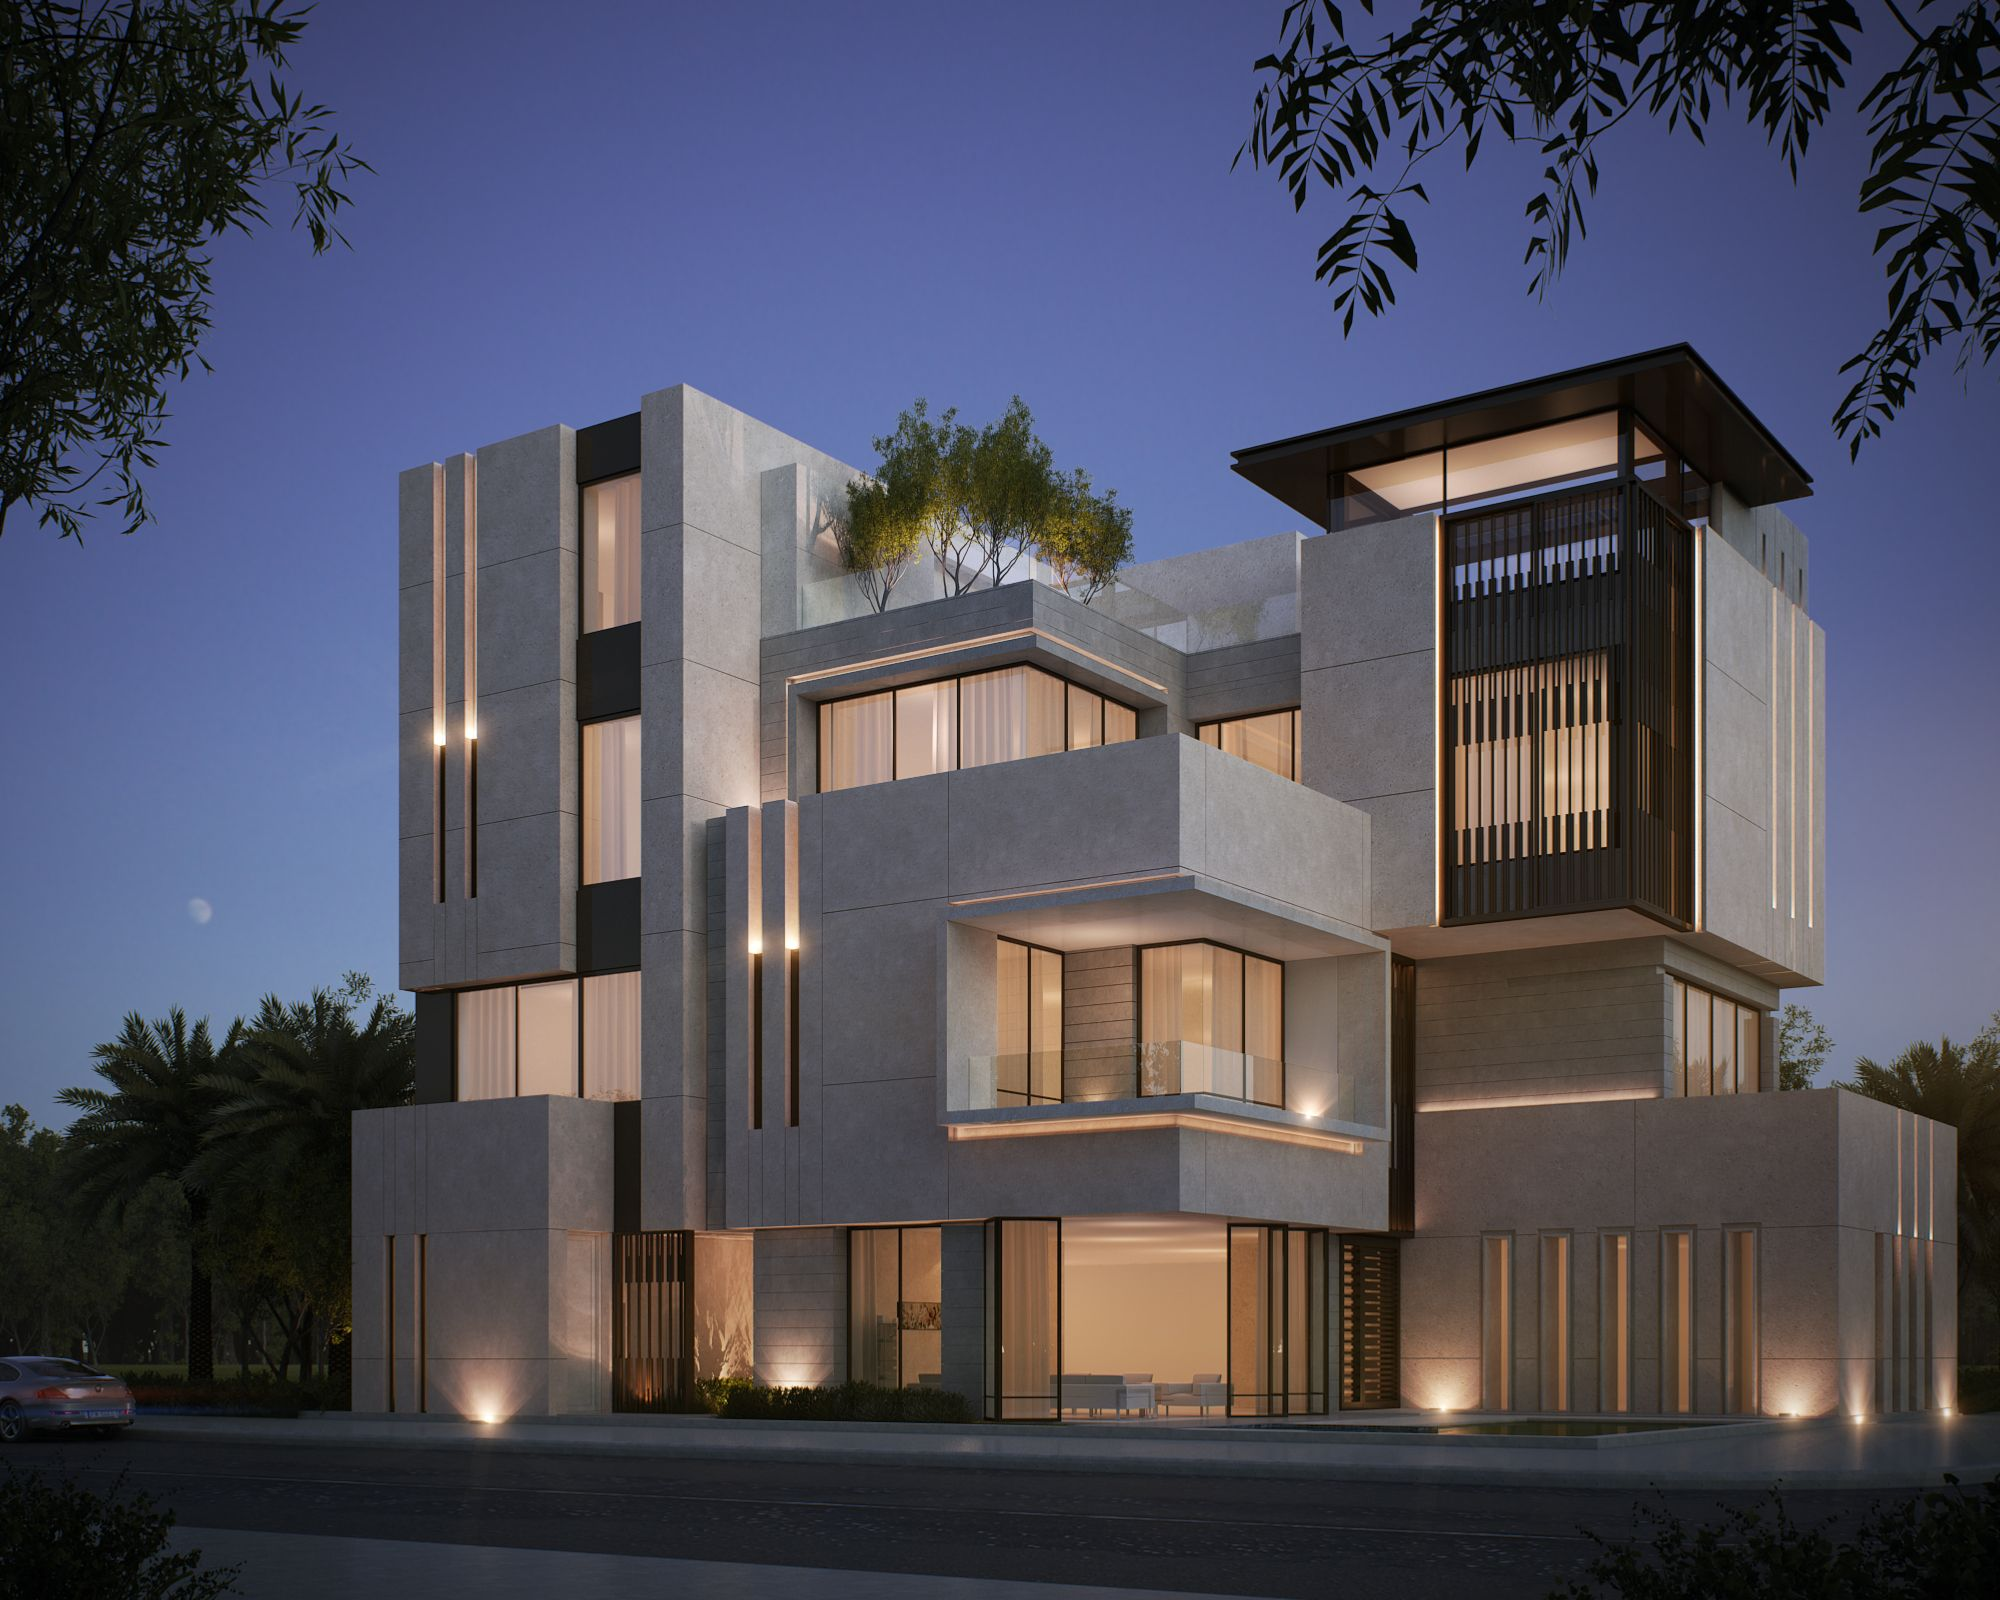 Private villa 500 m kuwait sarah sadeq architects sarah for Architecture villa design